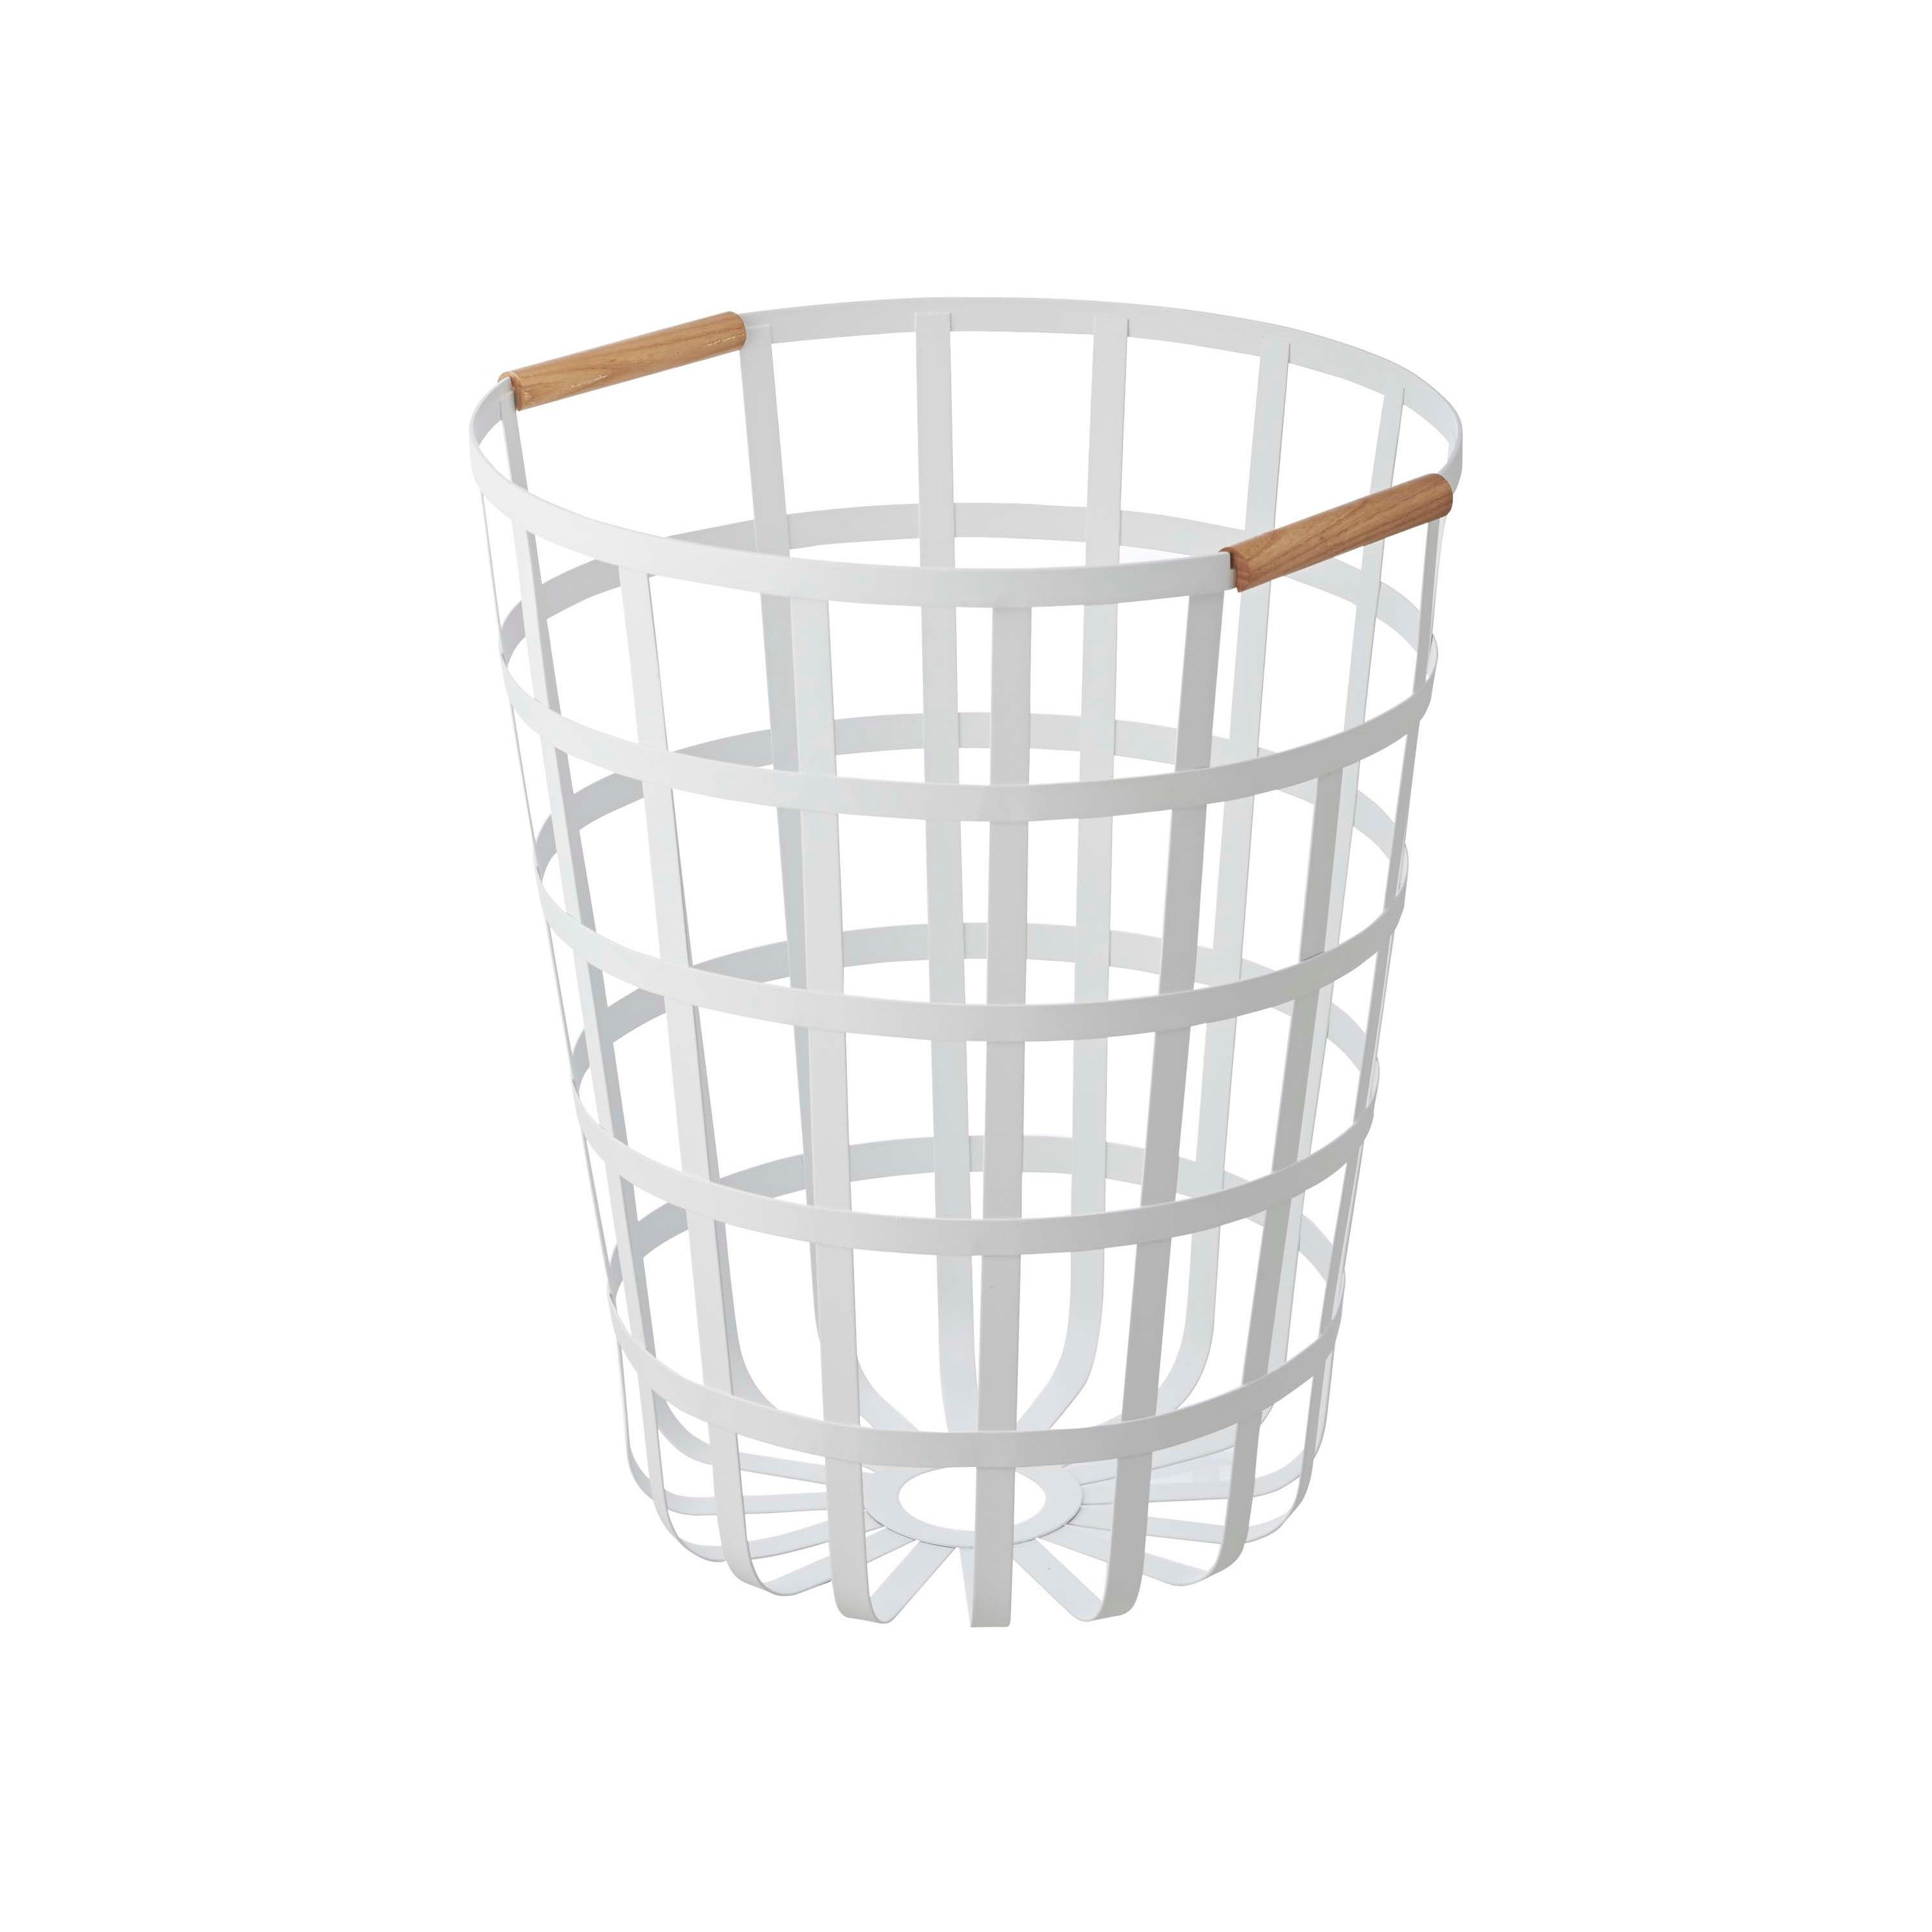 The Stylish Look Of This Handy Laundry Basket By Yamazaki Can Hold